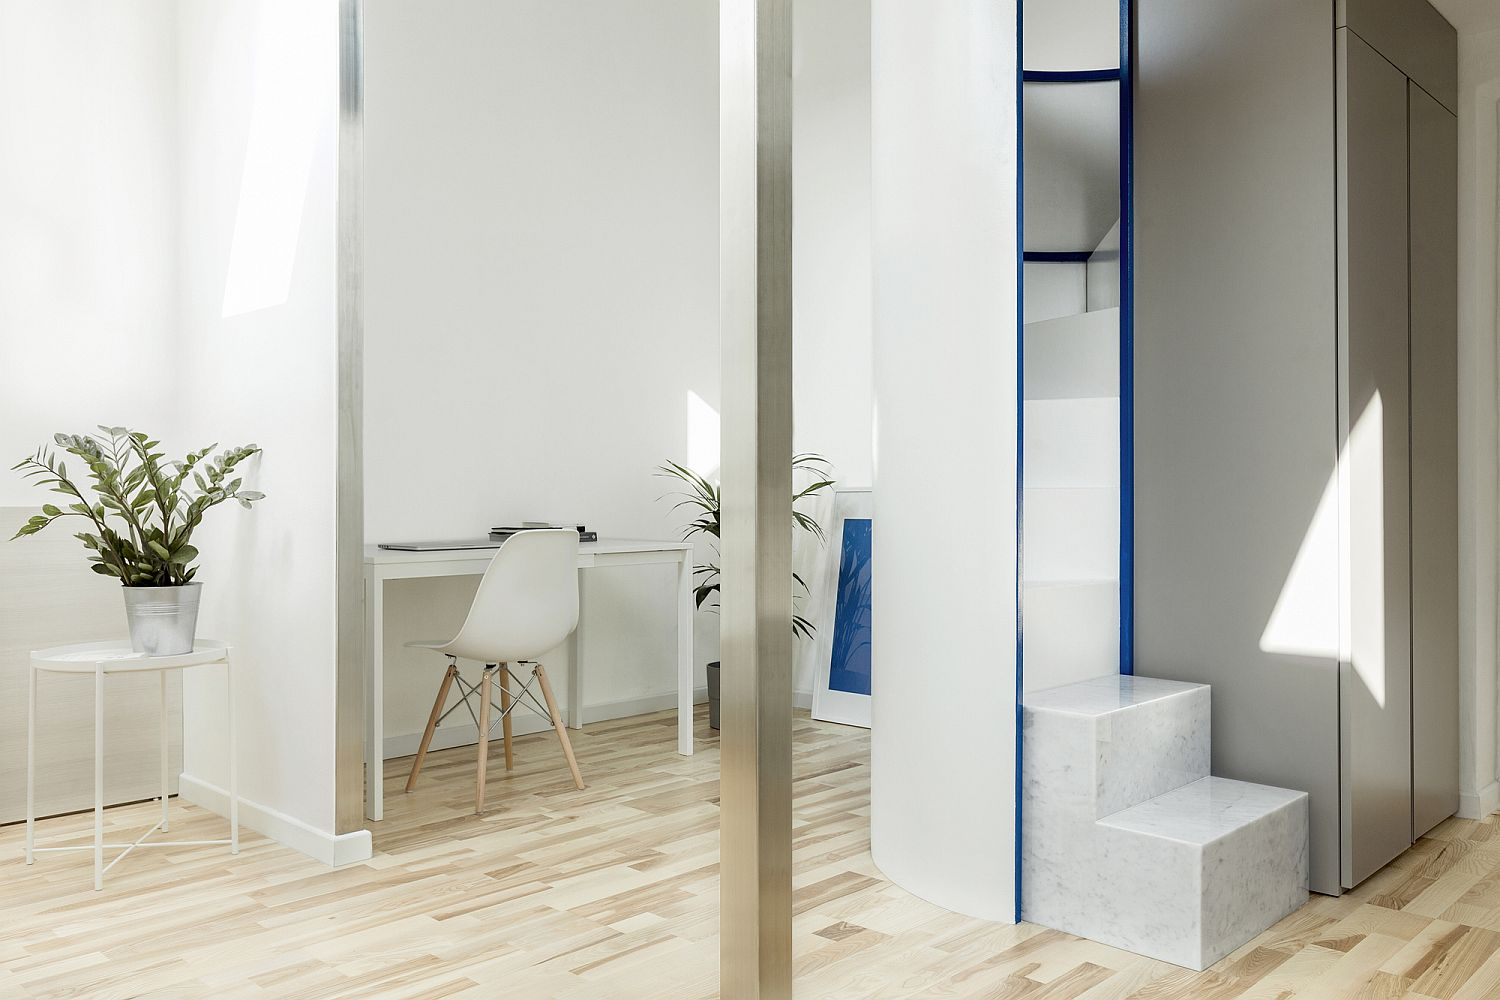 1559229132 224 compact white and wood apartment in milan maximizes space in style - Compact White and Wood Apartment in Milan Maximizes Space in Style